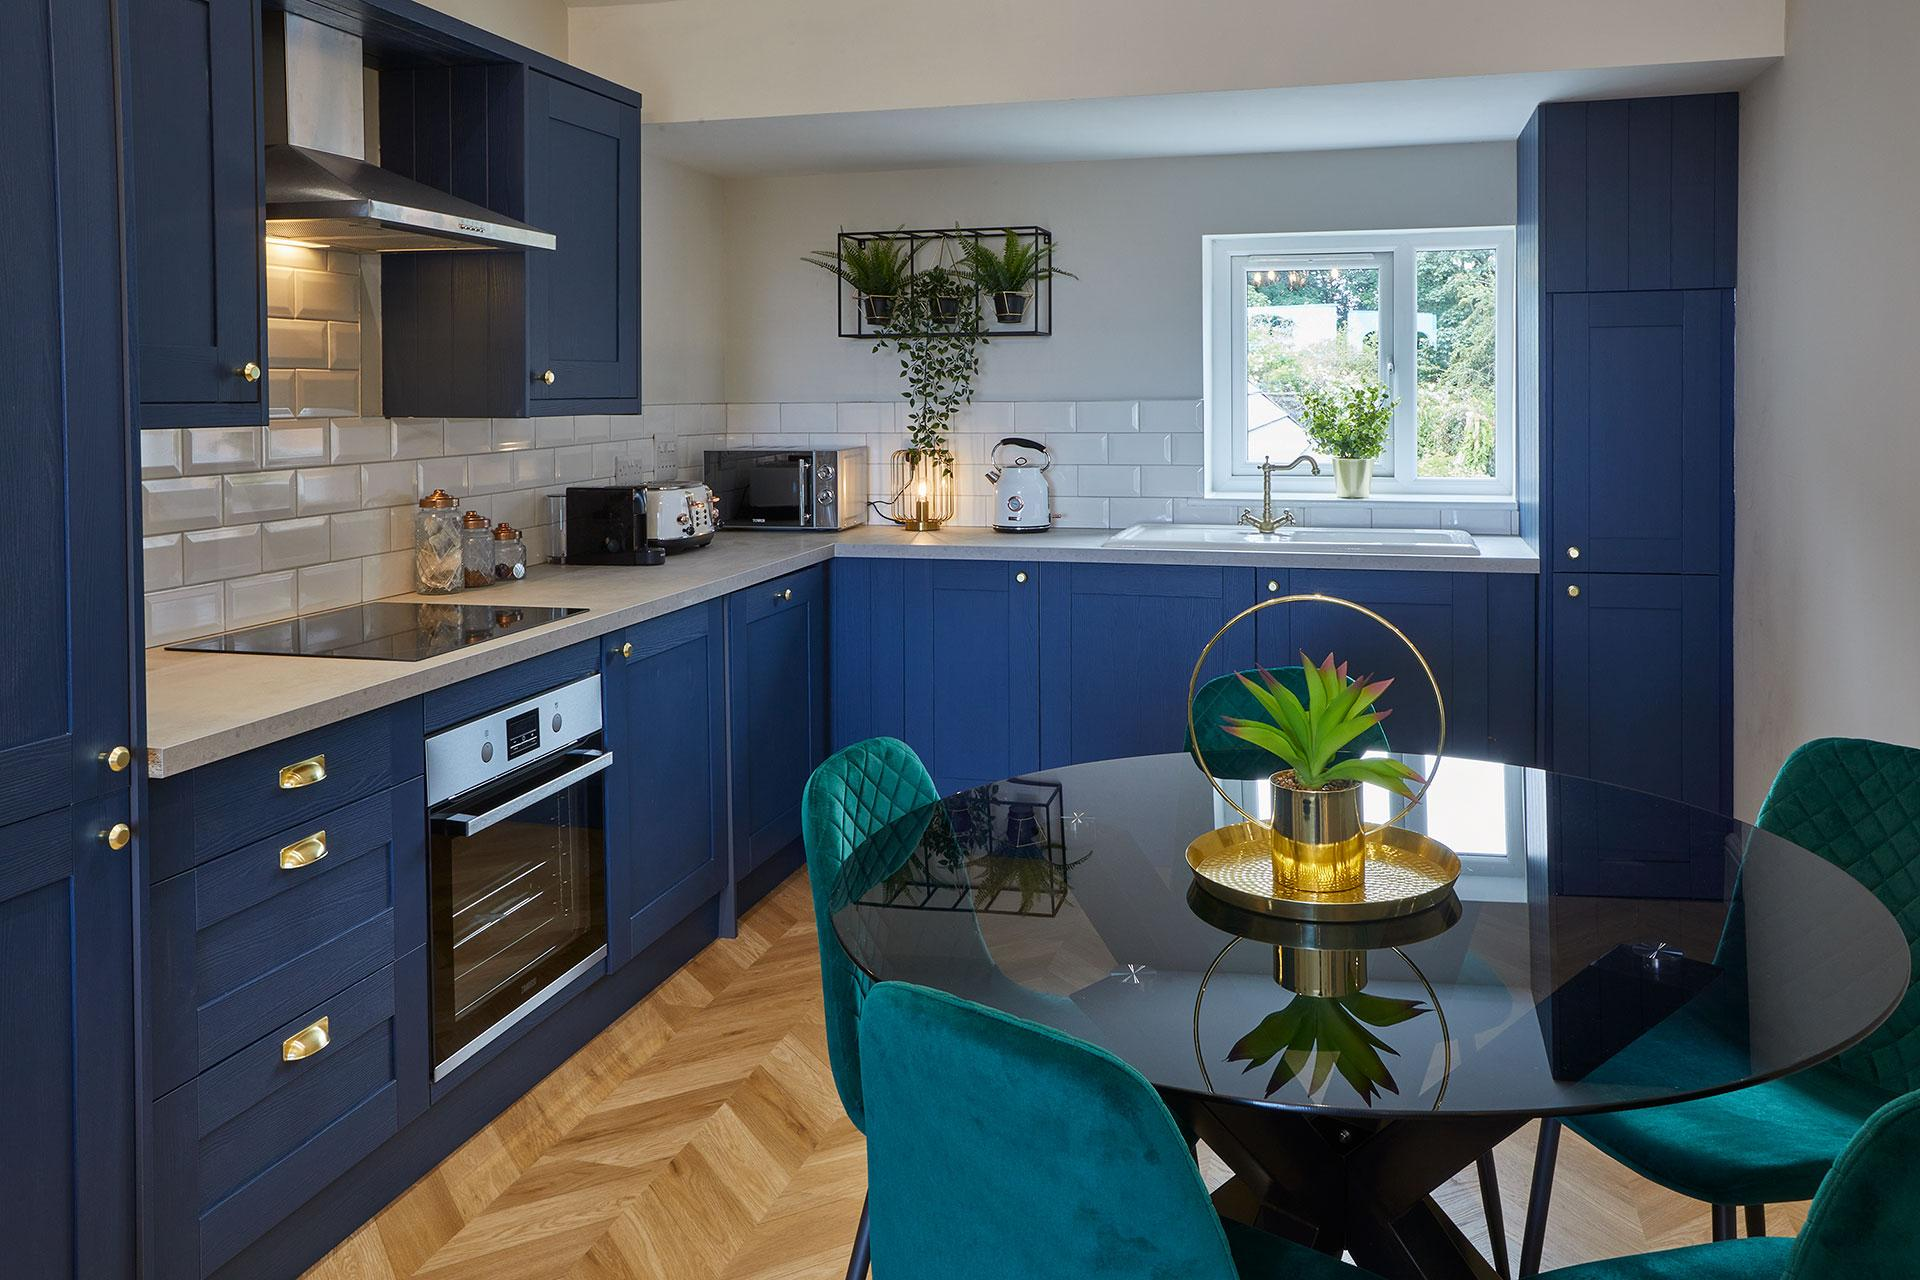 Property Image 2 - Luxury Two Bedroom Apartment Suited For Families and Friends